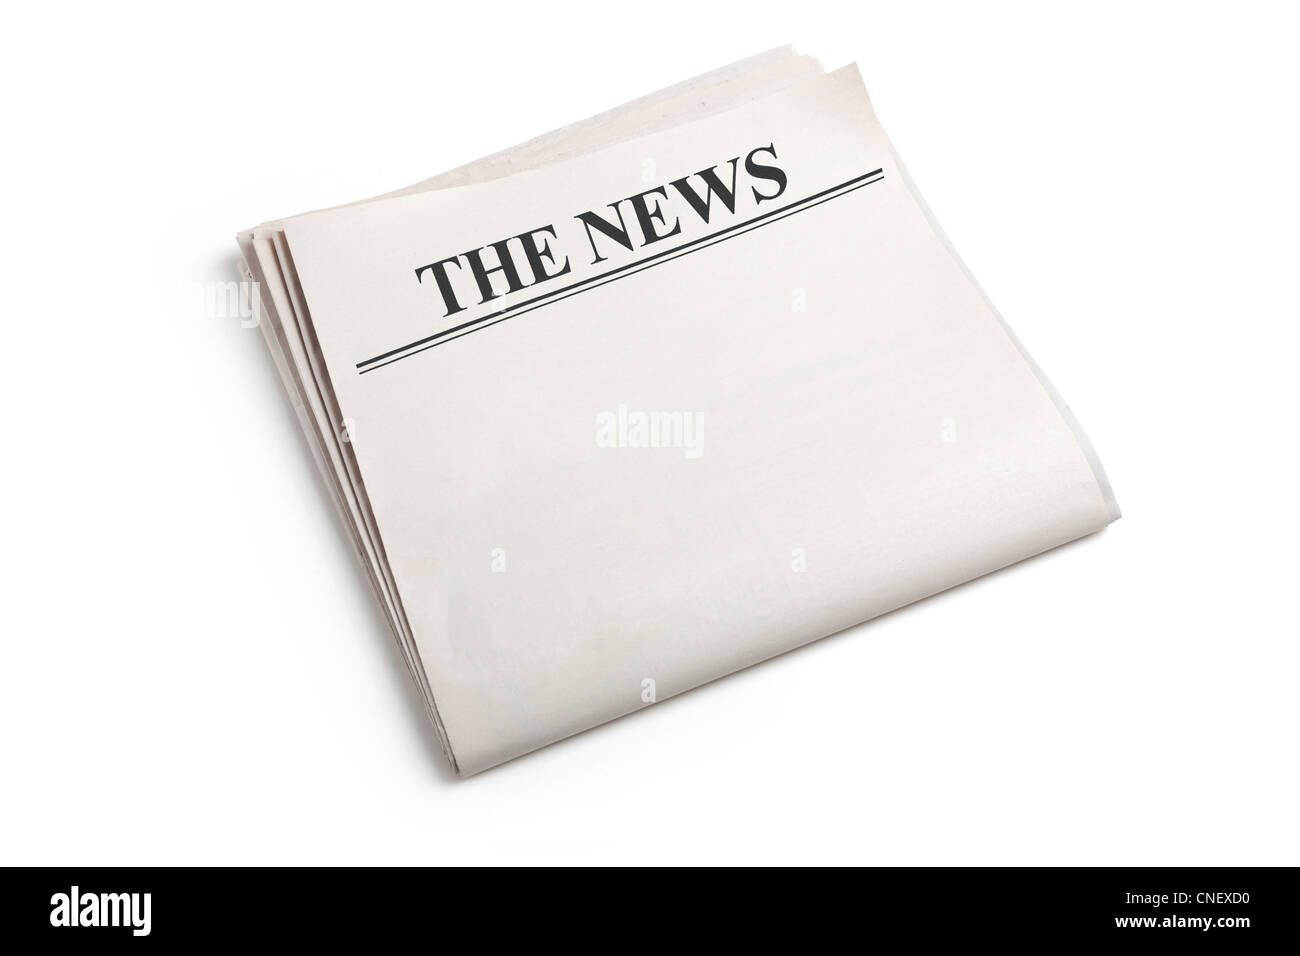 newspaper headline blank stock photos & newspaper headline blank